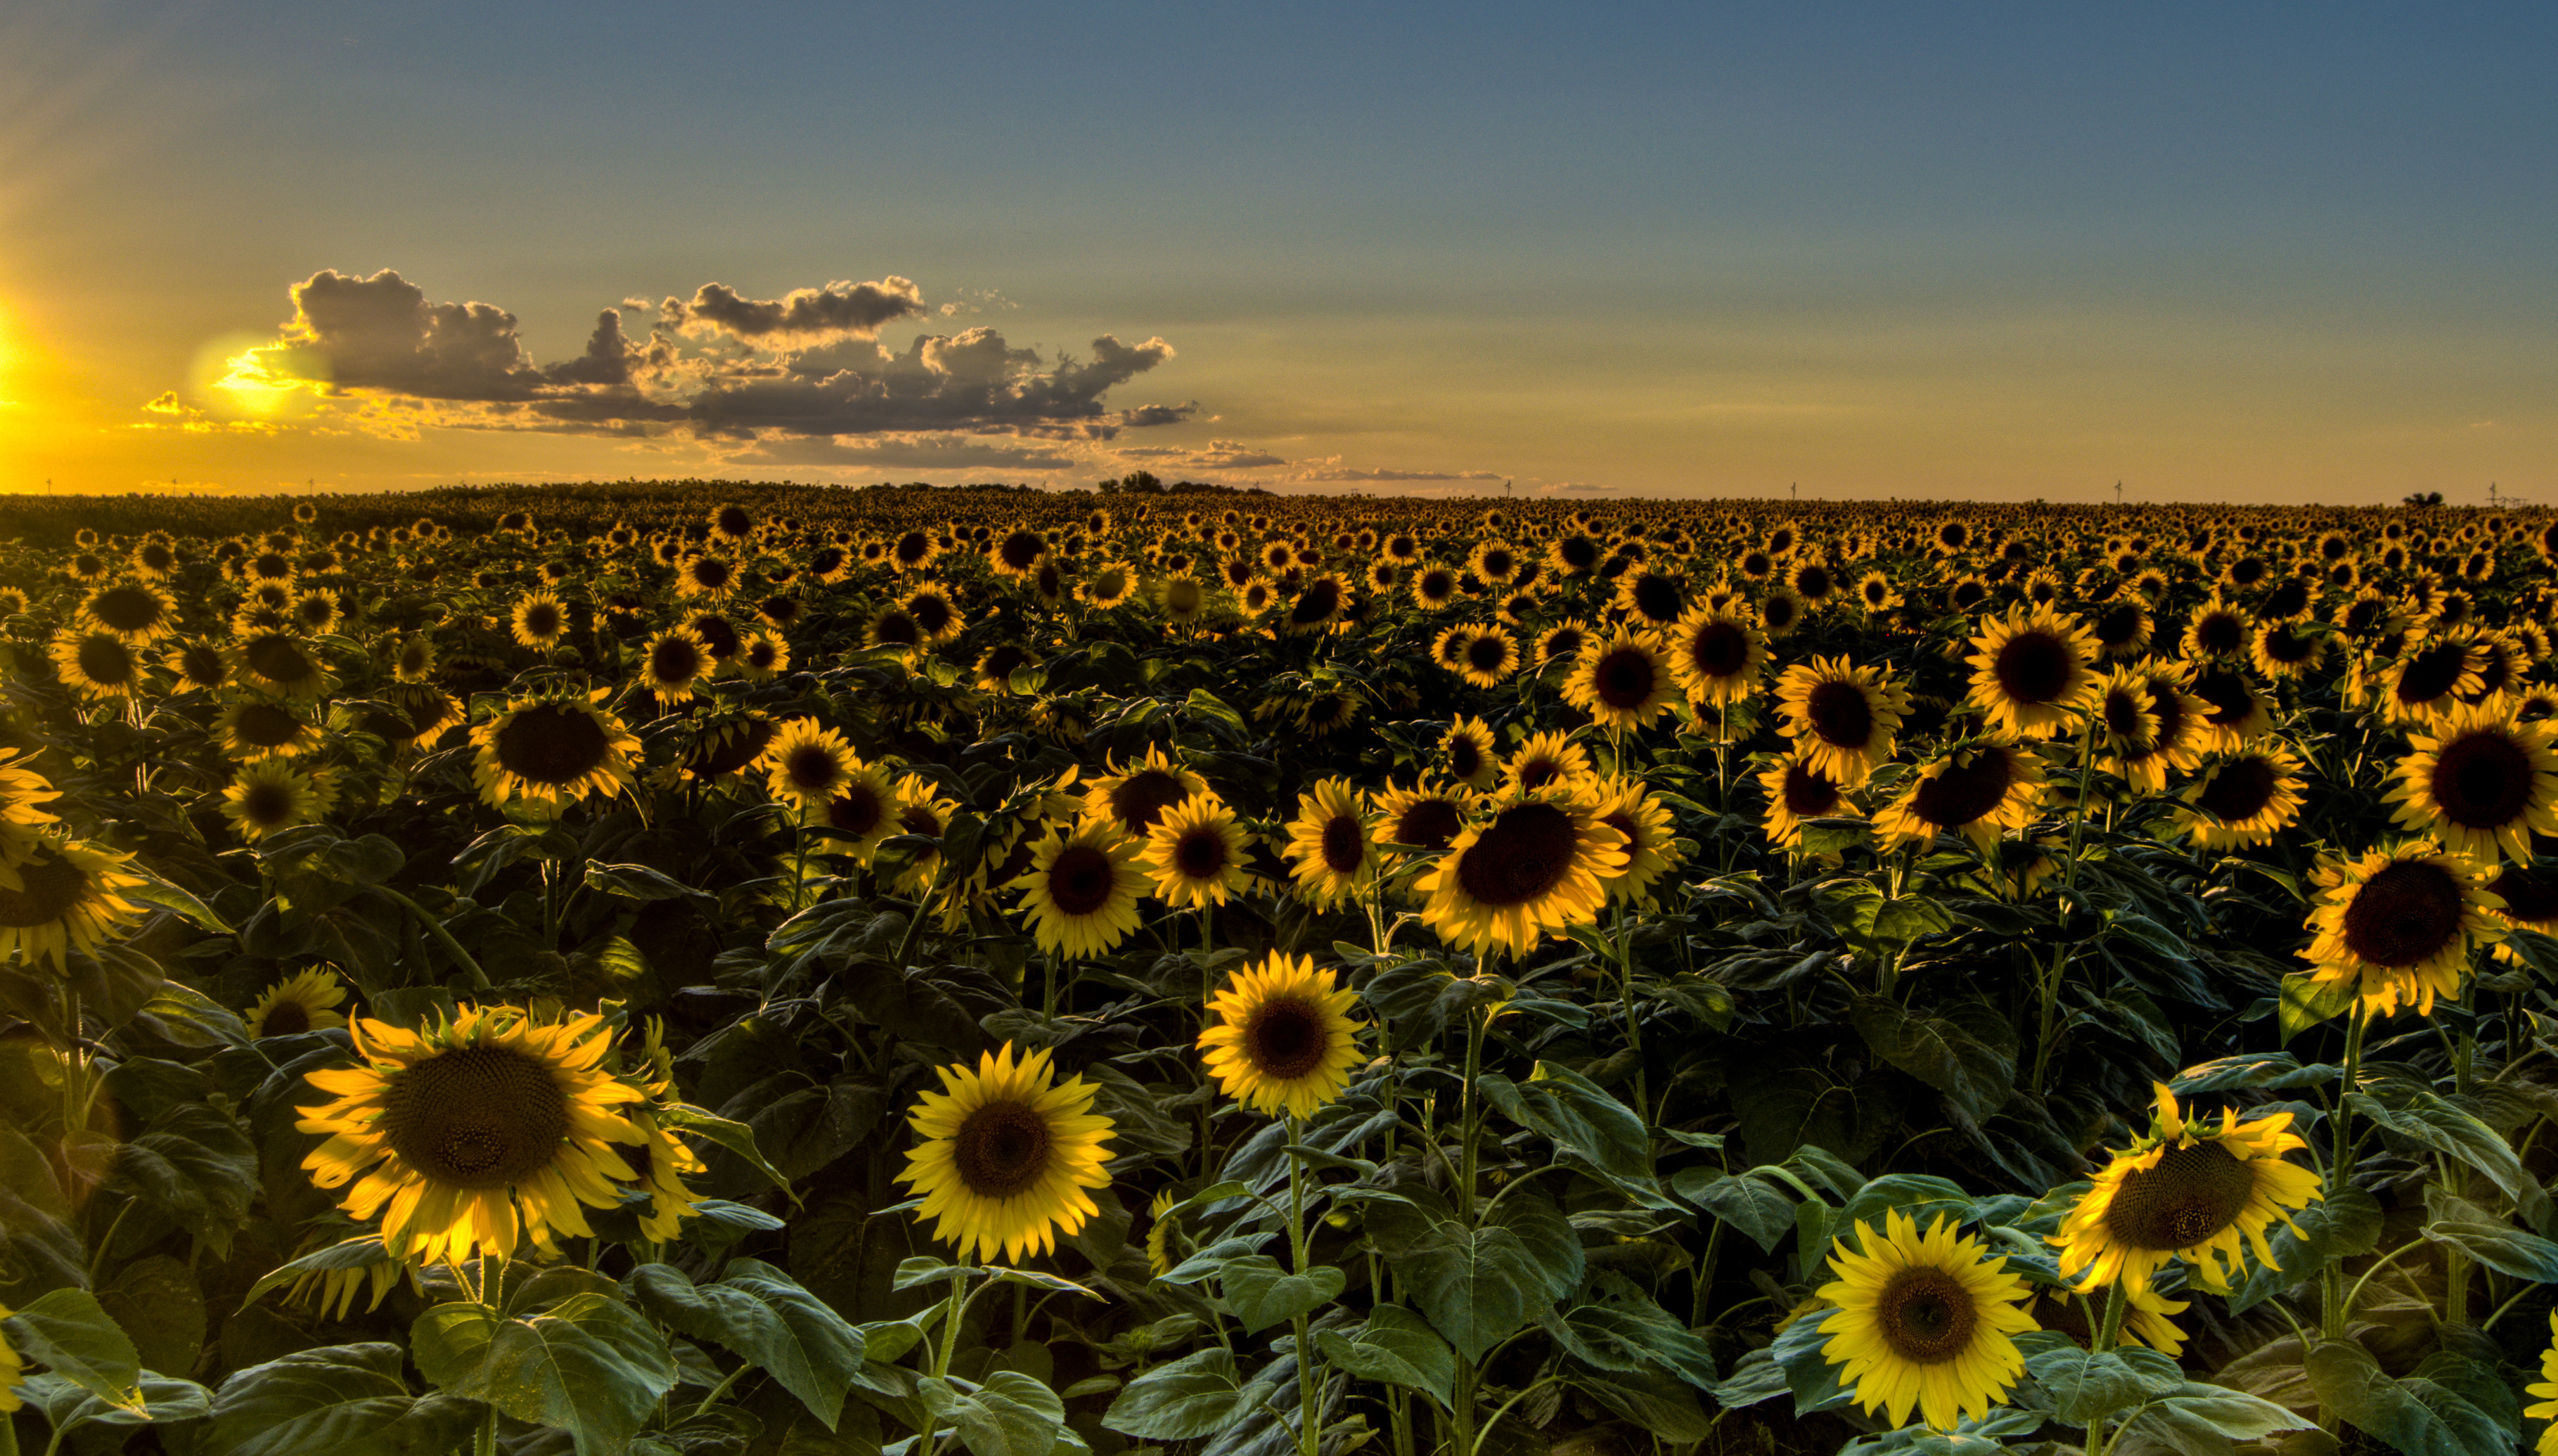 Sunset Field Sunflowers Sunflower Wallpaper Background 3638x2071